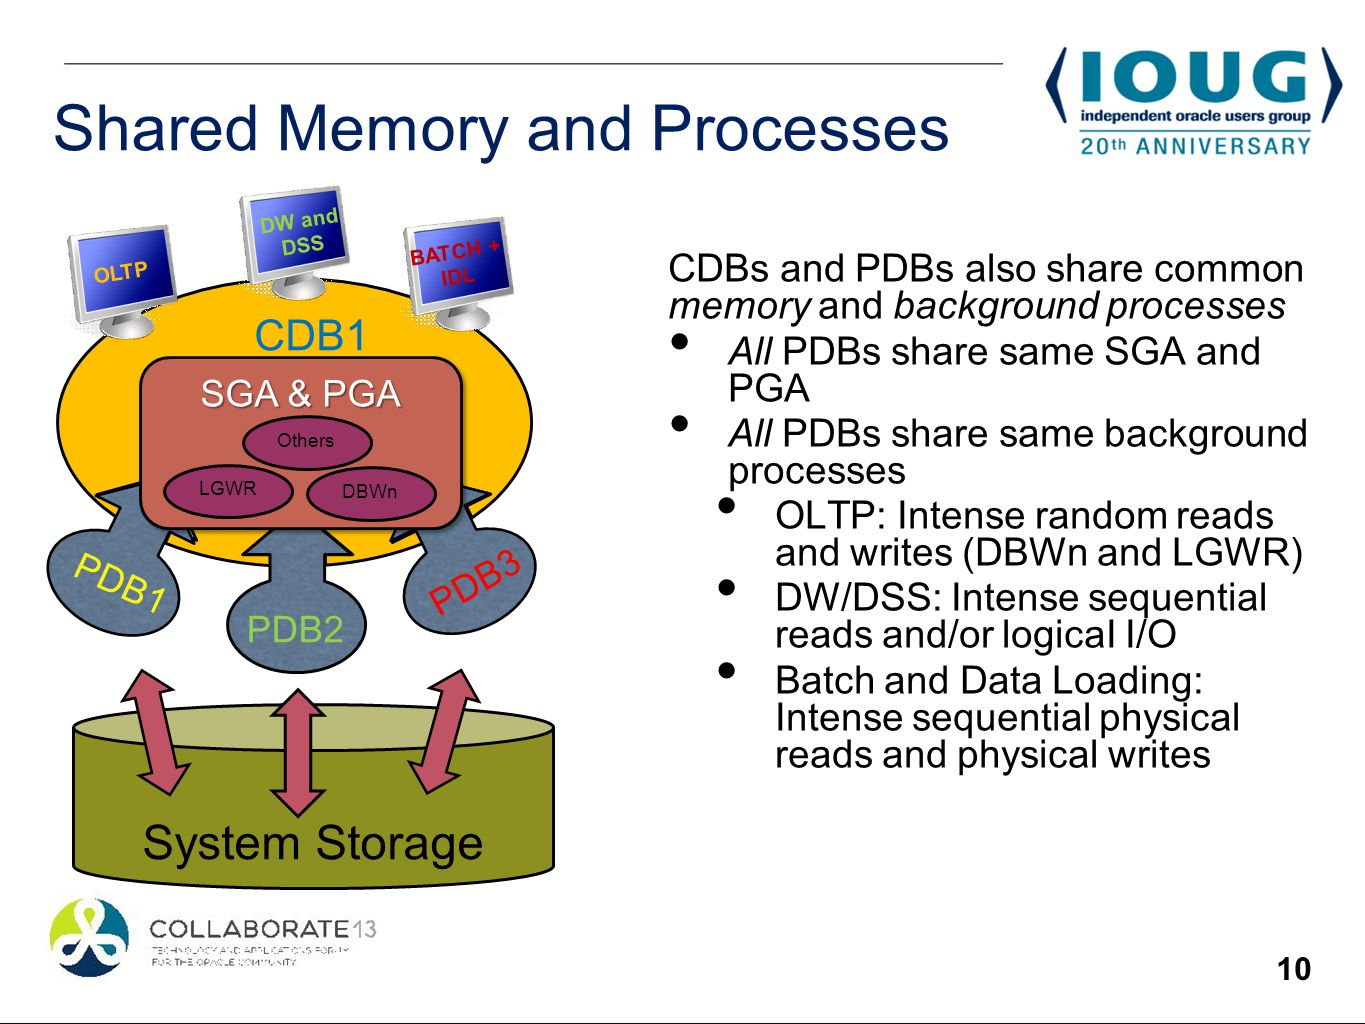 10 Shared Memory and Processes CDBs and PDBs also share common memory and background processes All PDBs share same SGA and PGA All PDBs share same background processes OLTP: Intense random reads and writes (DBWn and LGWR) DW/DSS: Intense sequential reads and/or logicaI I/O Batch and Data Loading: Intense sequential physical reads and physical writes PDB1 PDB3 PDB2 CDB1 System Storage DW and DSS OLTP BATCH + IDL SGA & PGA LGWR DBWn Others